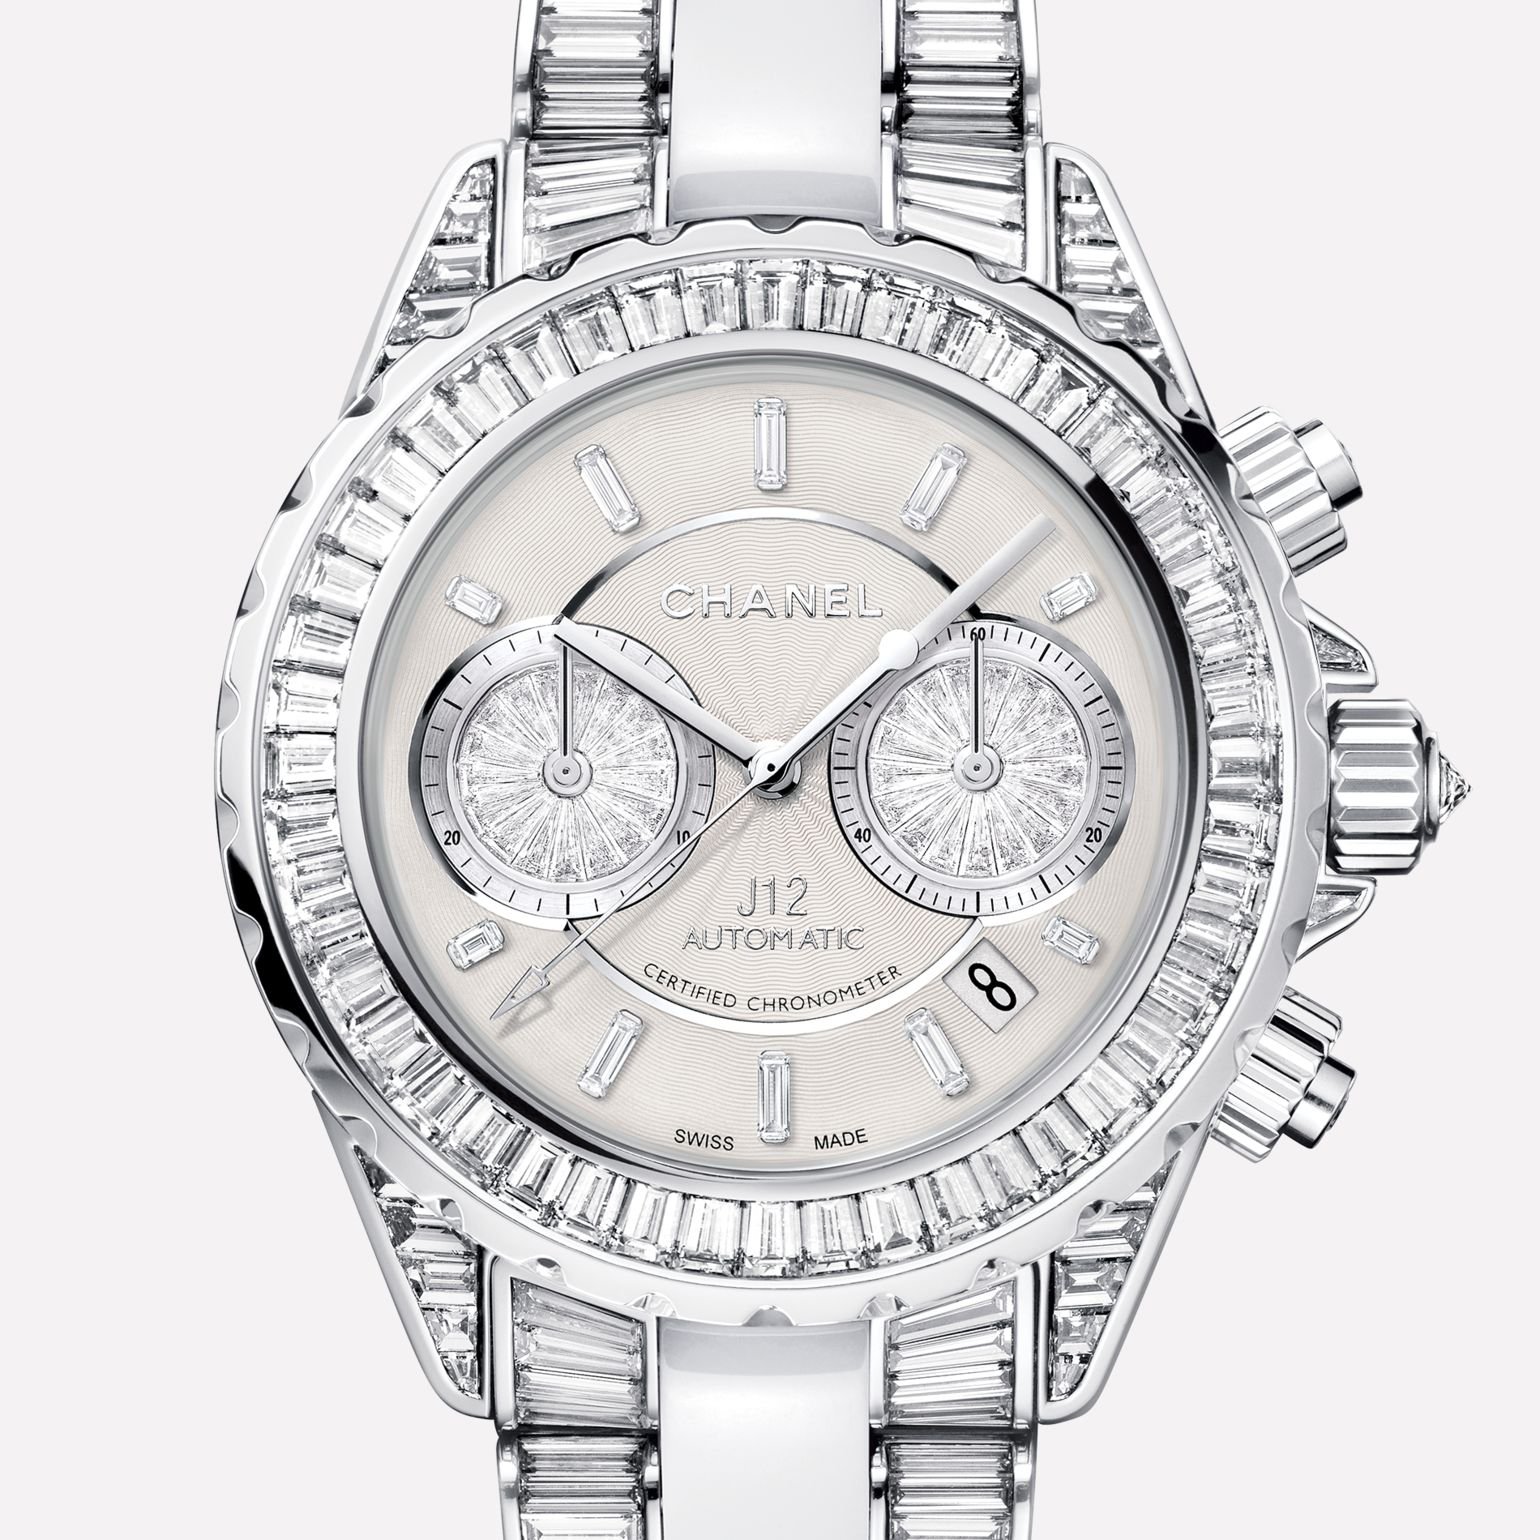 J12 High Jewellery Watch Chronograph, white gold and white ceramic, case, dial, bezel and bracelet set with baguette cut diamonds